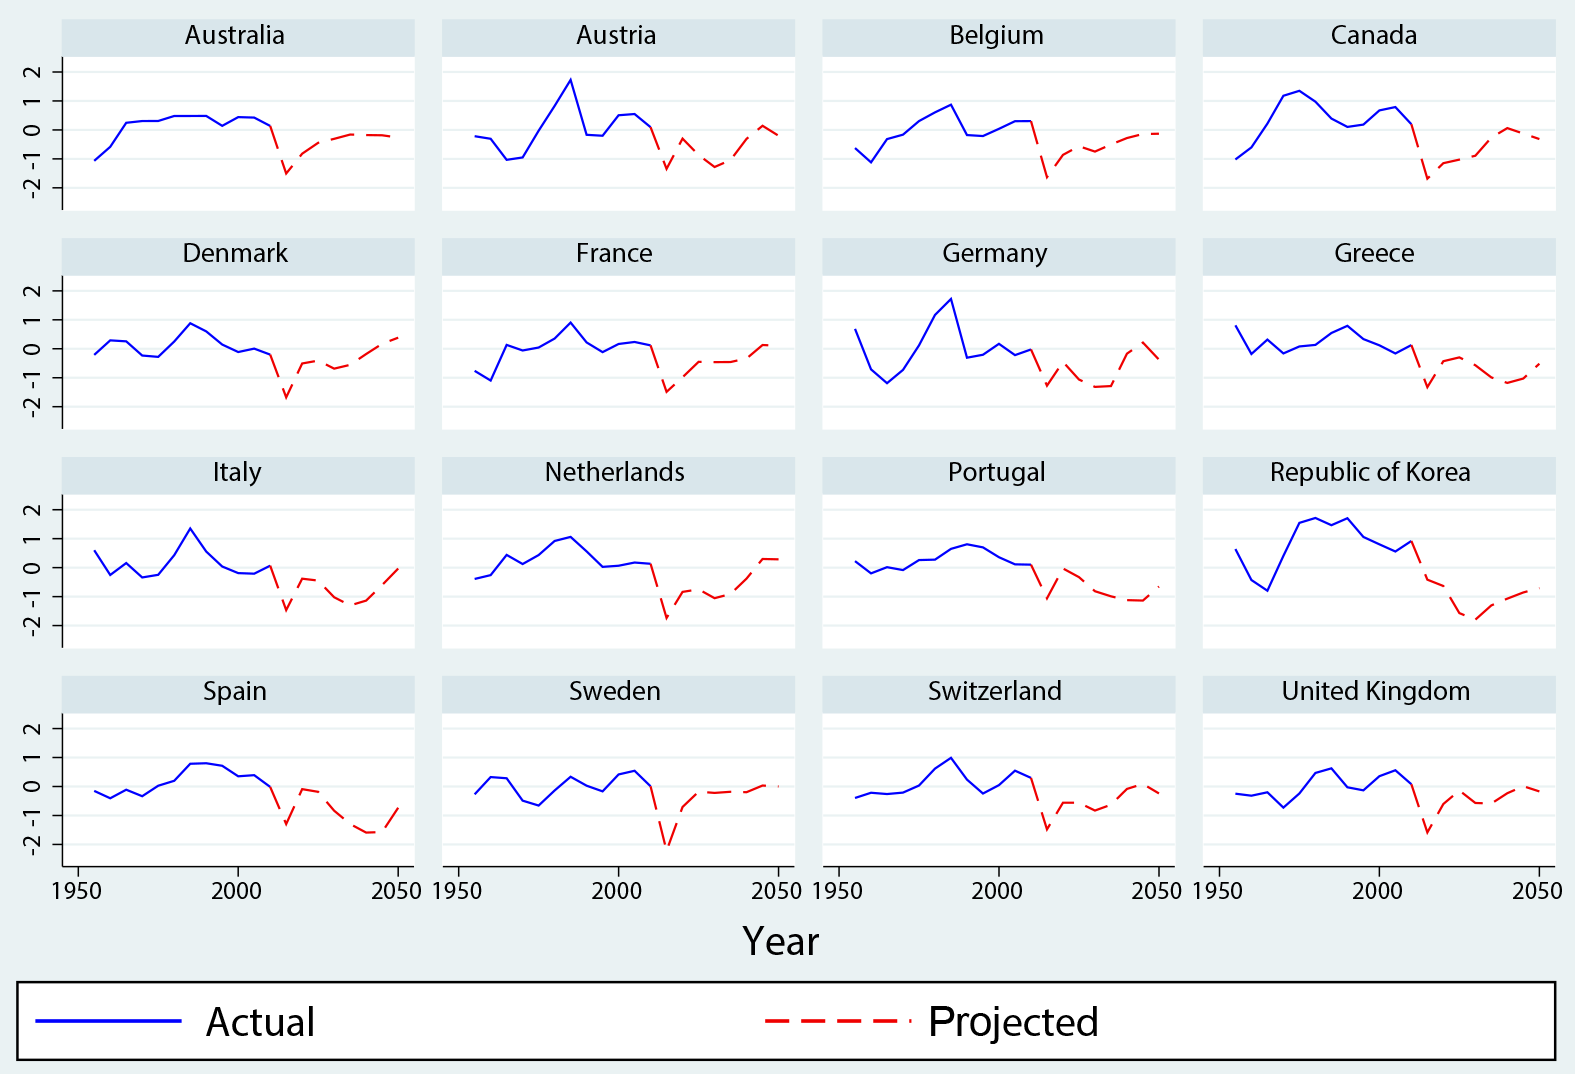 Frb ifdp notes the effects of demographic change on gdp growth in figure 5 contributions of demography on gdp growth rate oecd countries nvjuhfo Images